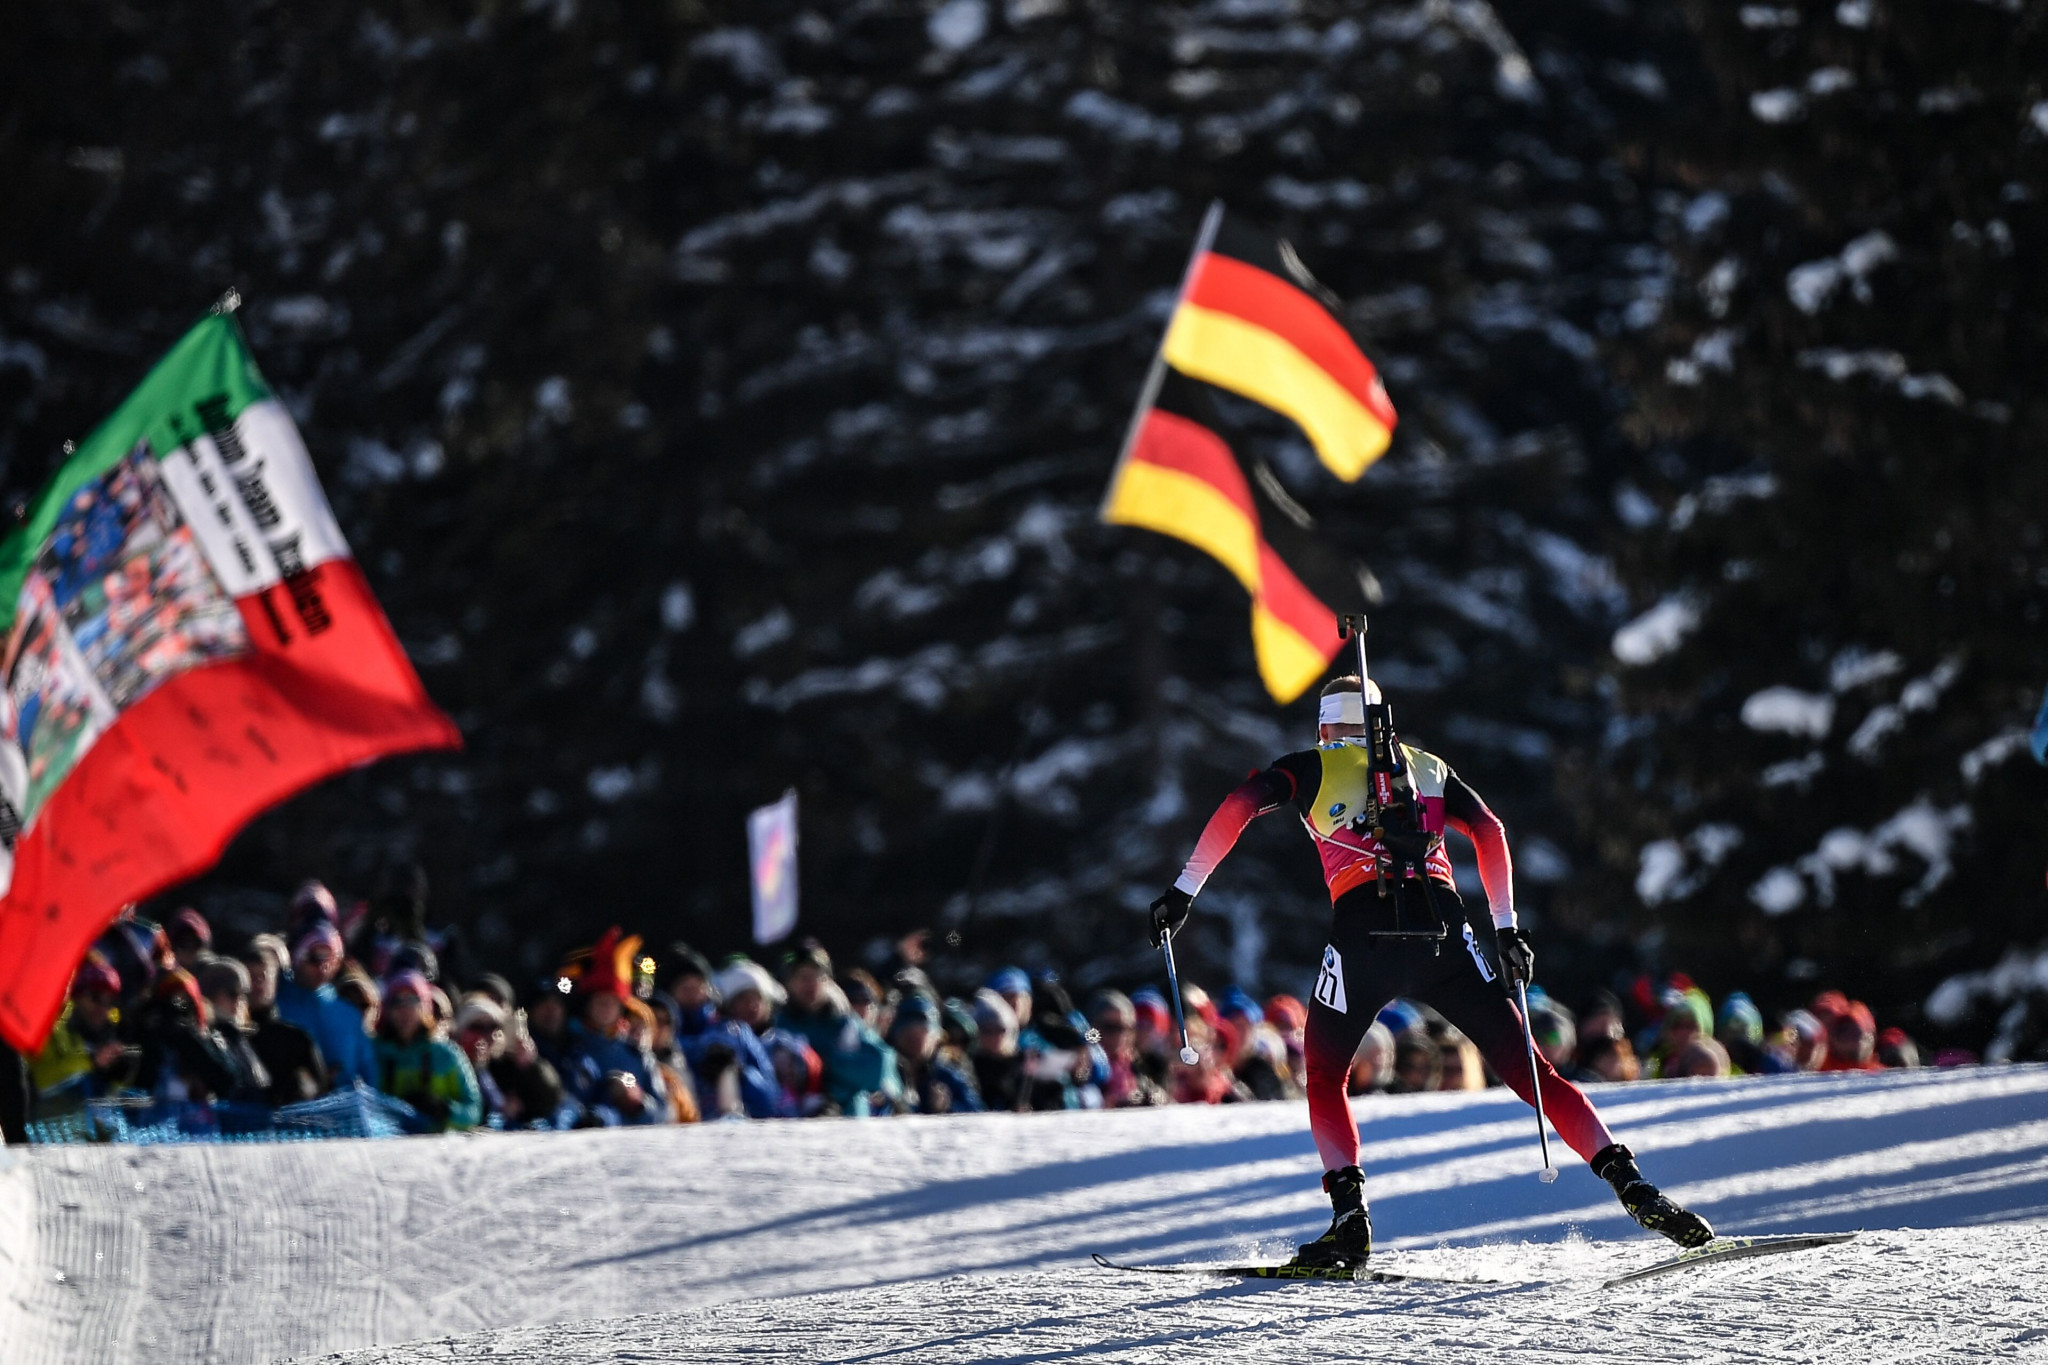 Bø gains 10th win of season at IBU World Cup in Antholz